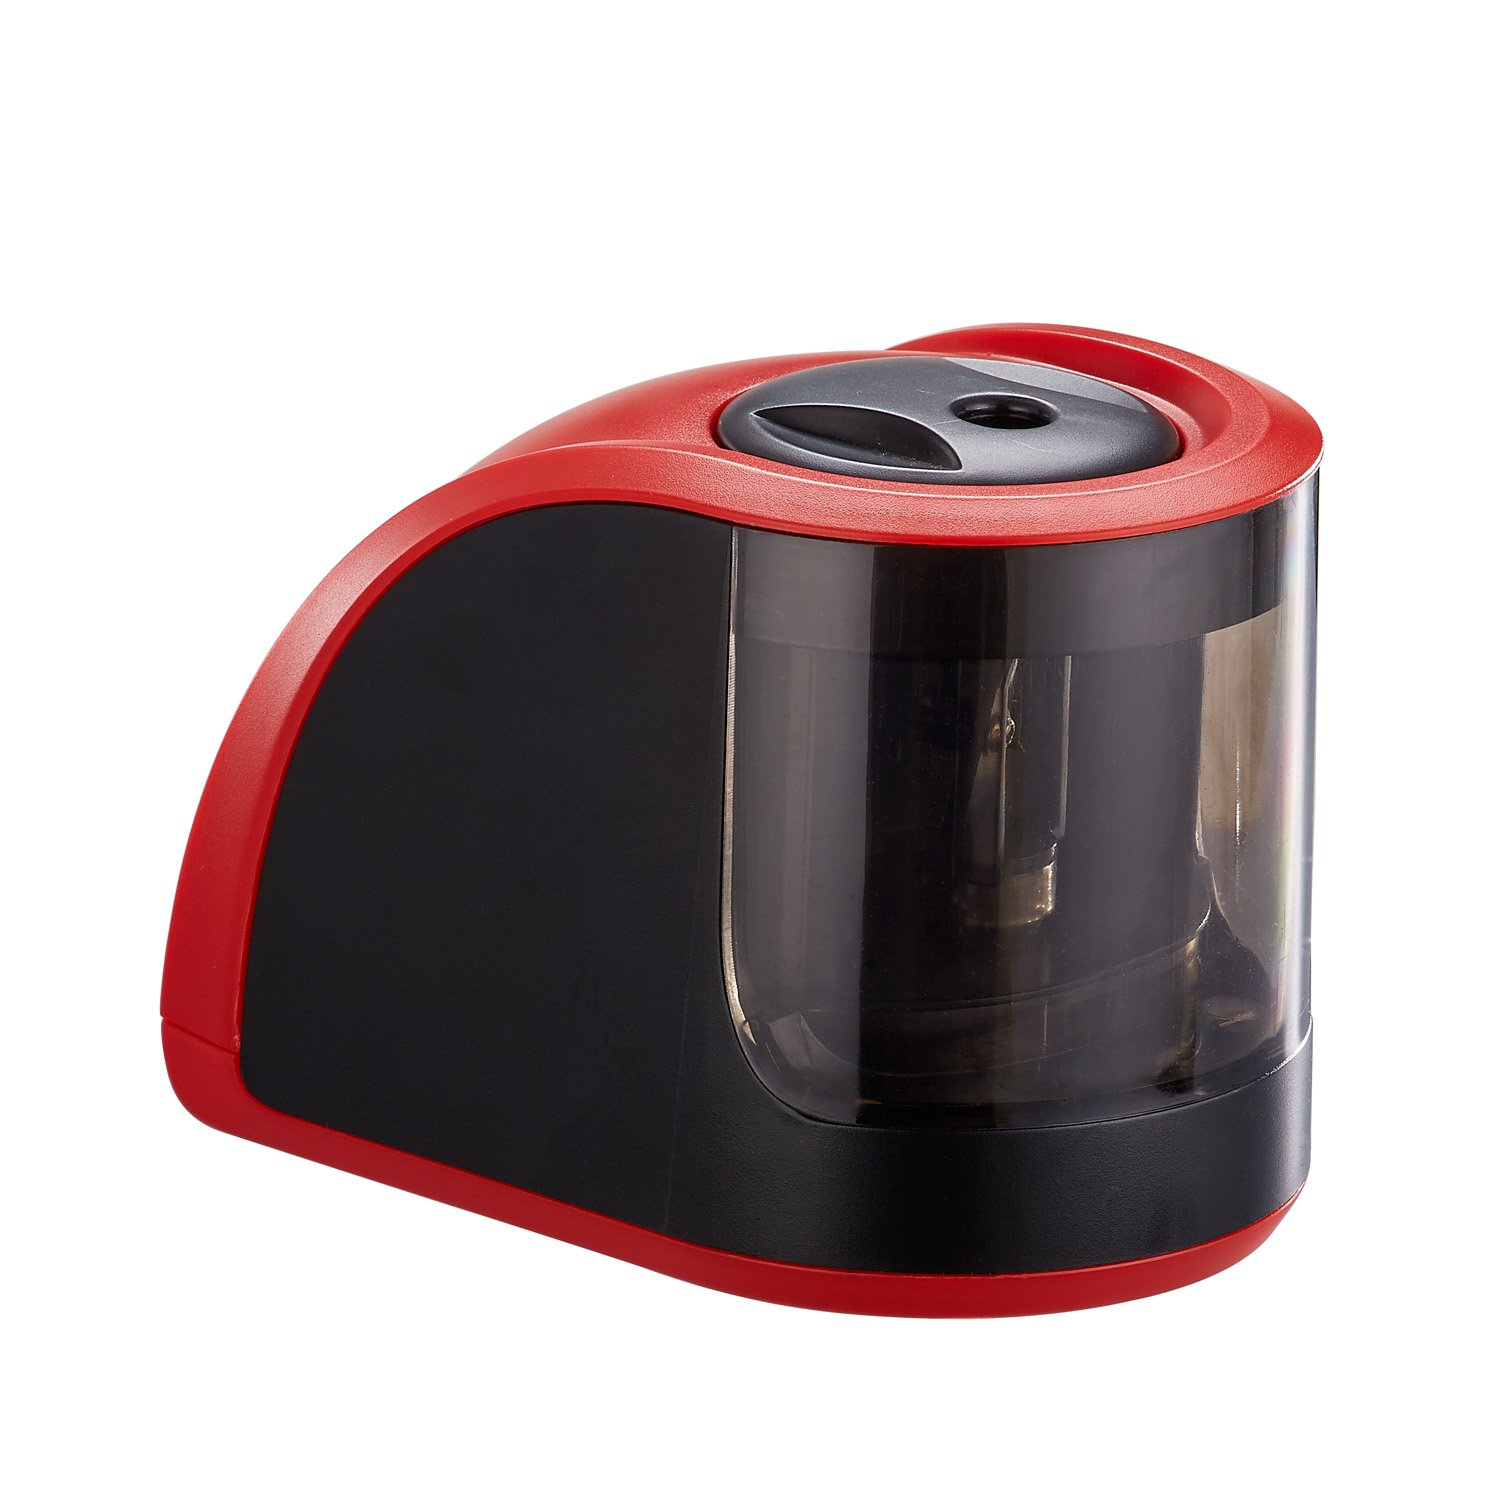 ProAid Portable Electric Pencil Sharpener - Powered by Batteries or Adapter - Perfect For Office, Kids, Artists, Red